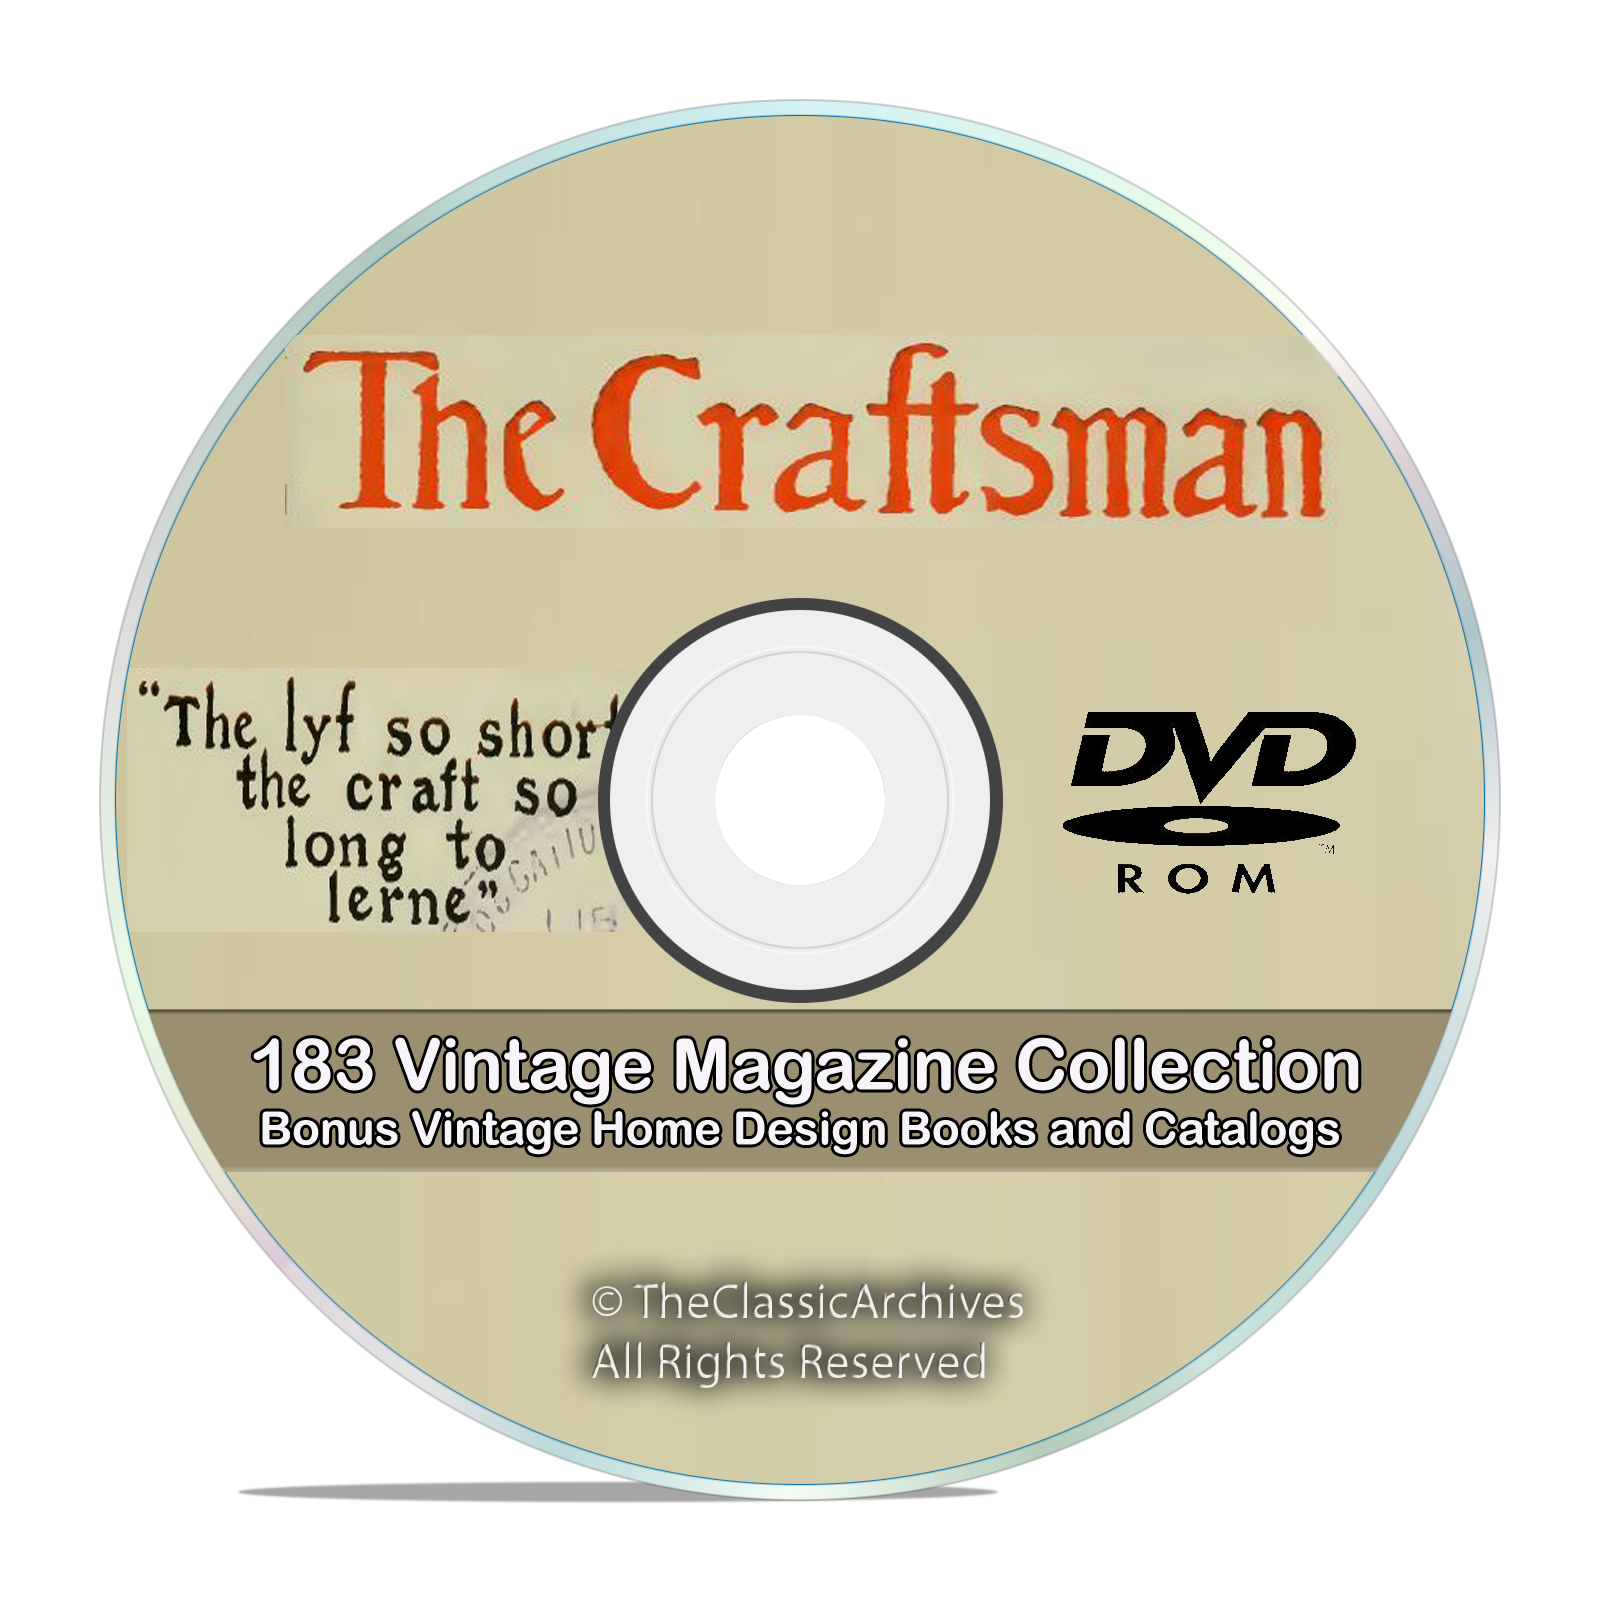 The Craftsman Magazine 183 Issue Collection, Gustav Stickley House Plan DVD